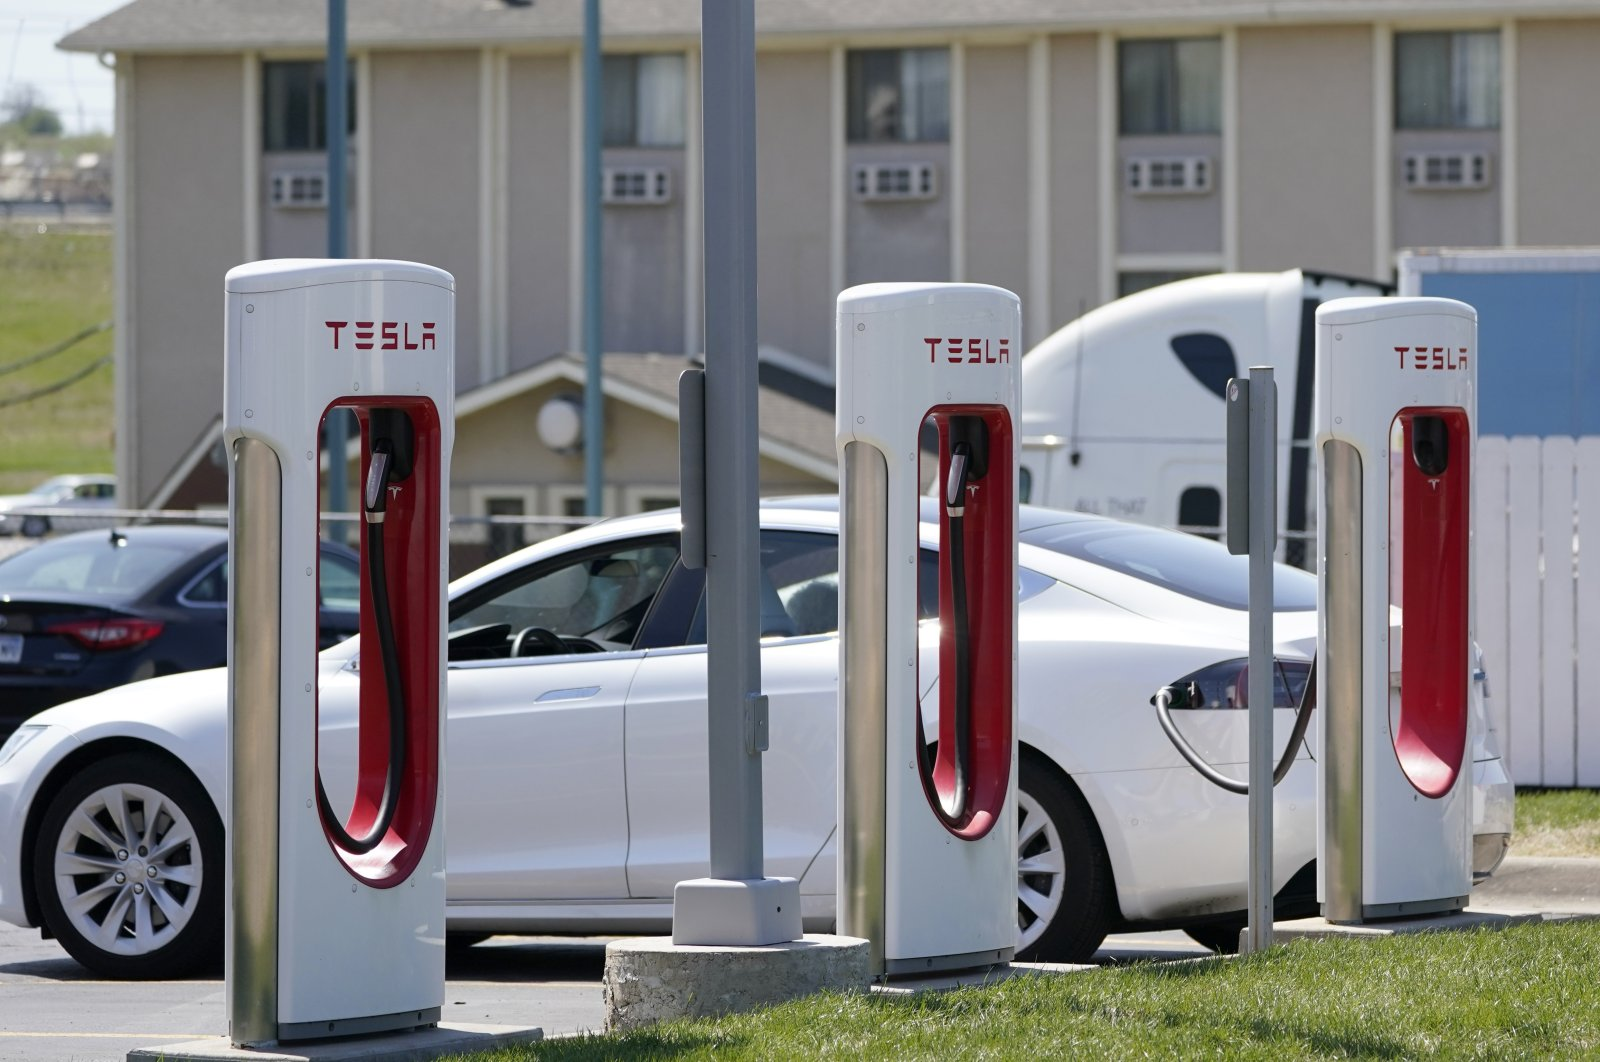 A Tesla electric vehicle charges at a station in Topeka, Kansas, U.S., April 5, 2021. (AP Photo)